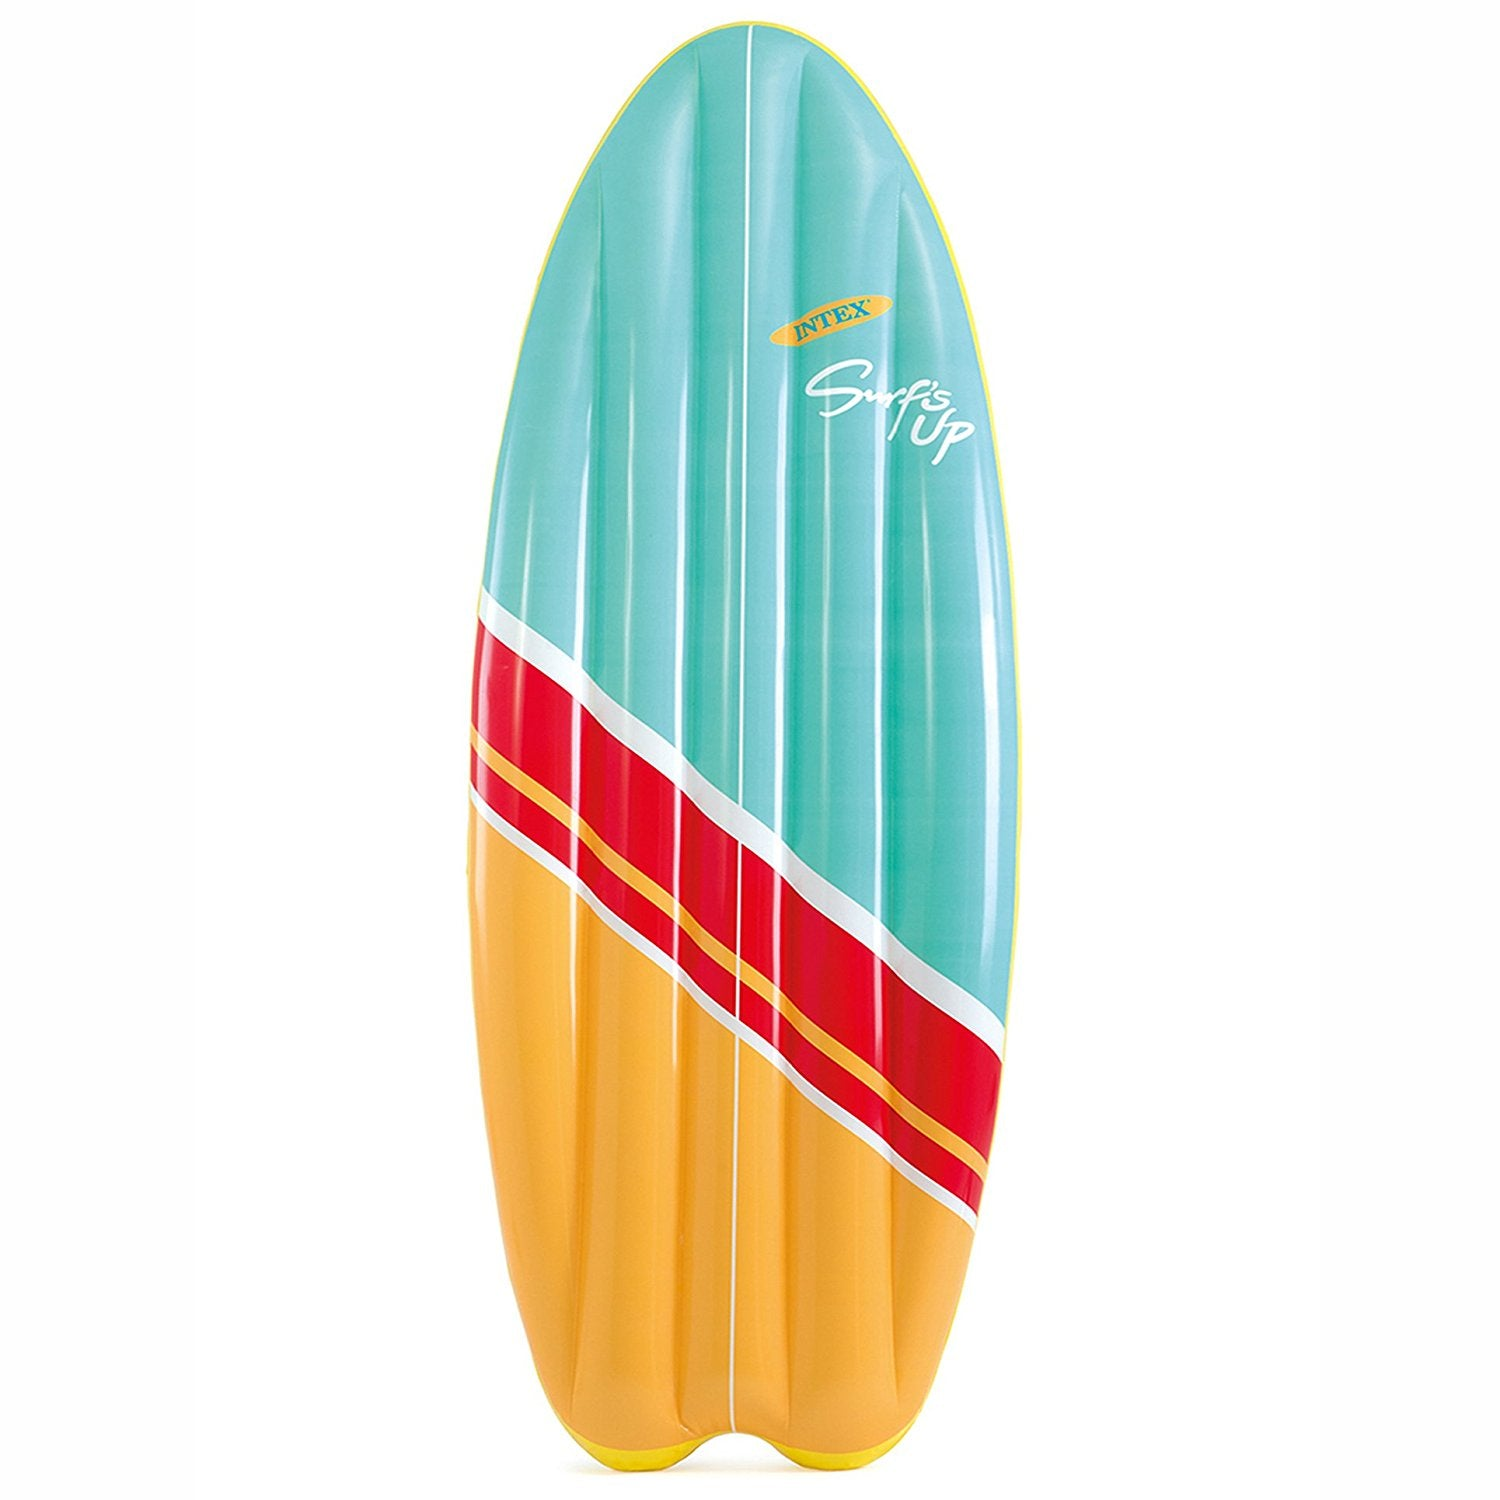 "Intex Surf's Up High Wave Surfboard Inflatable Mat with Fiber-Tech Construction 70"" X 27"""